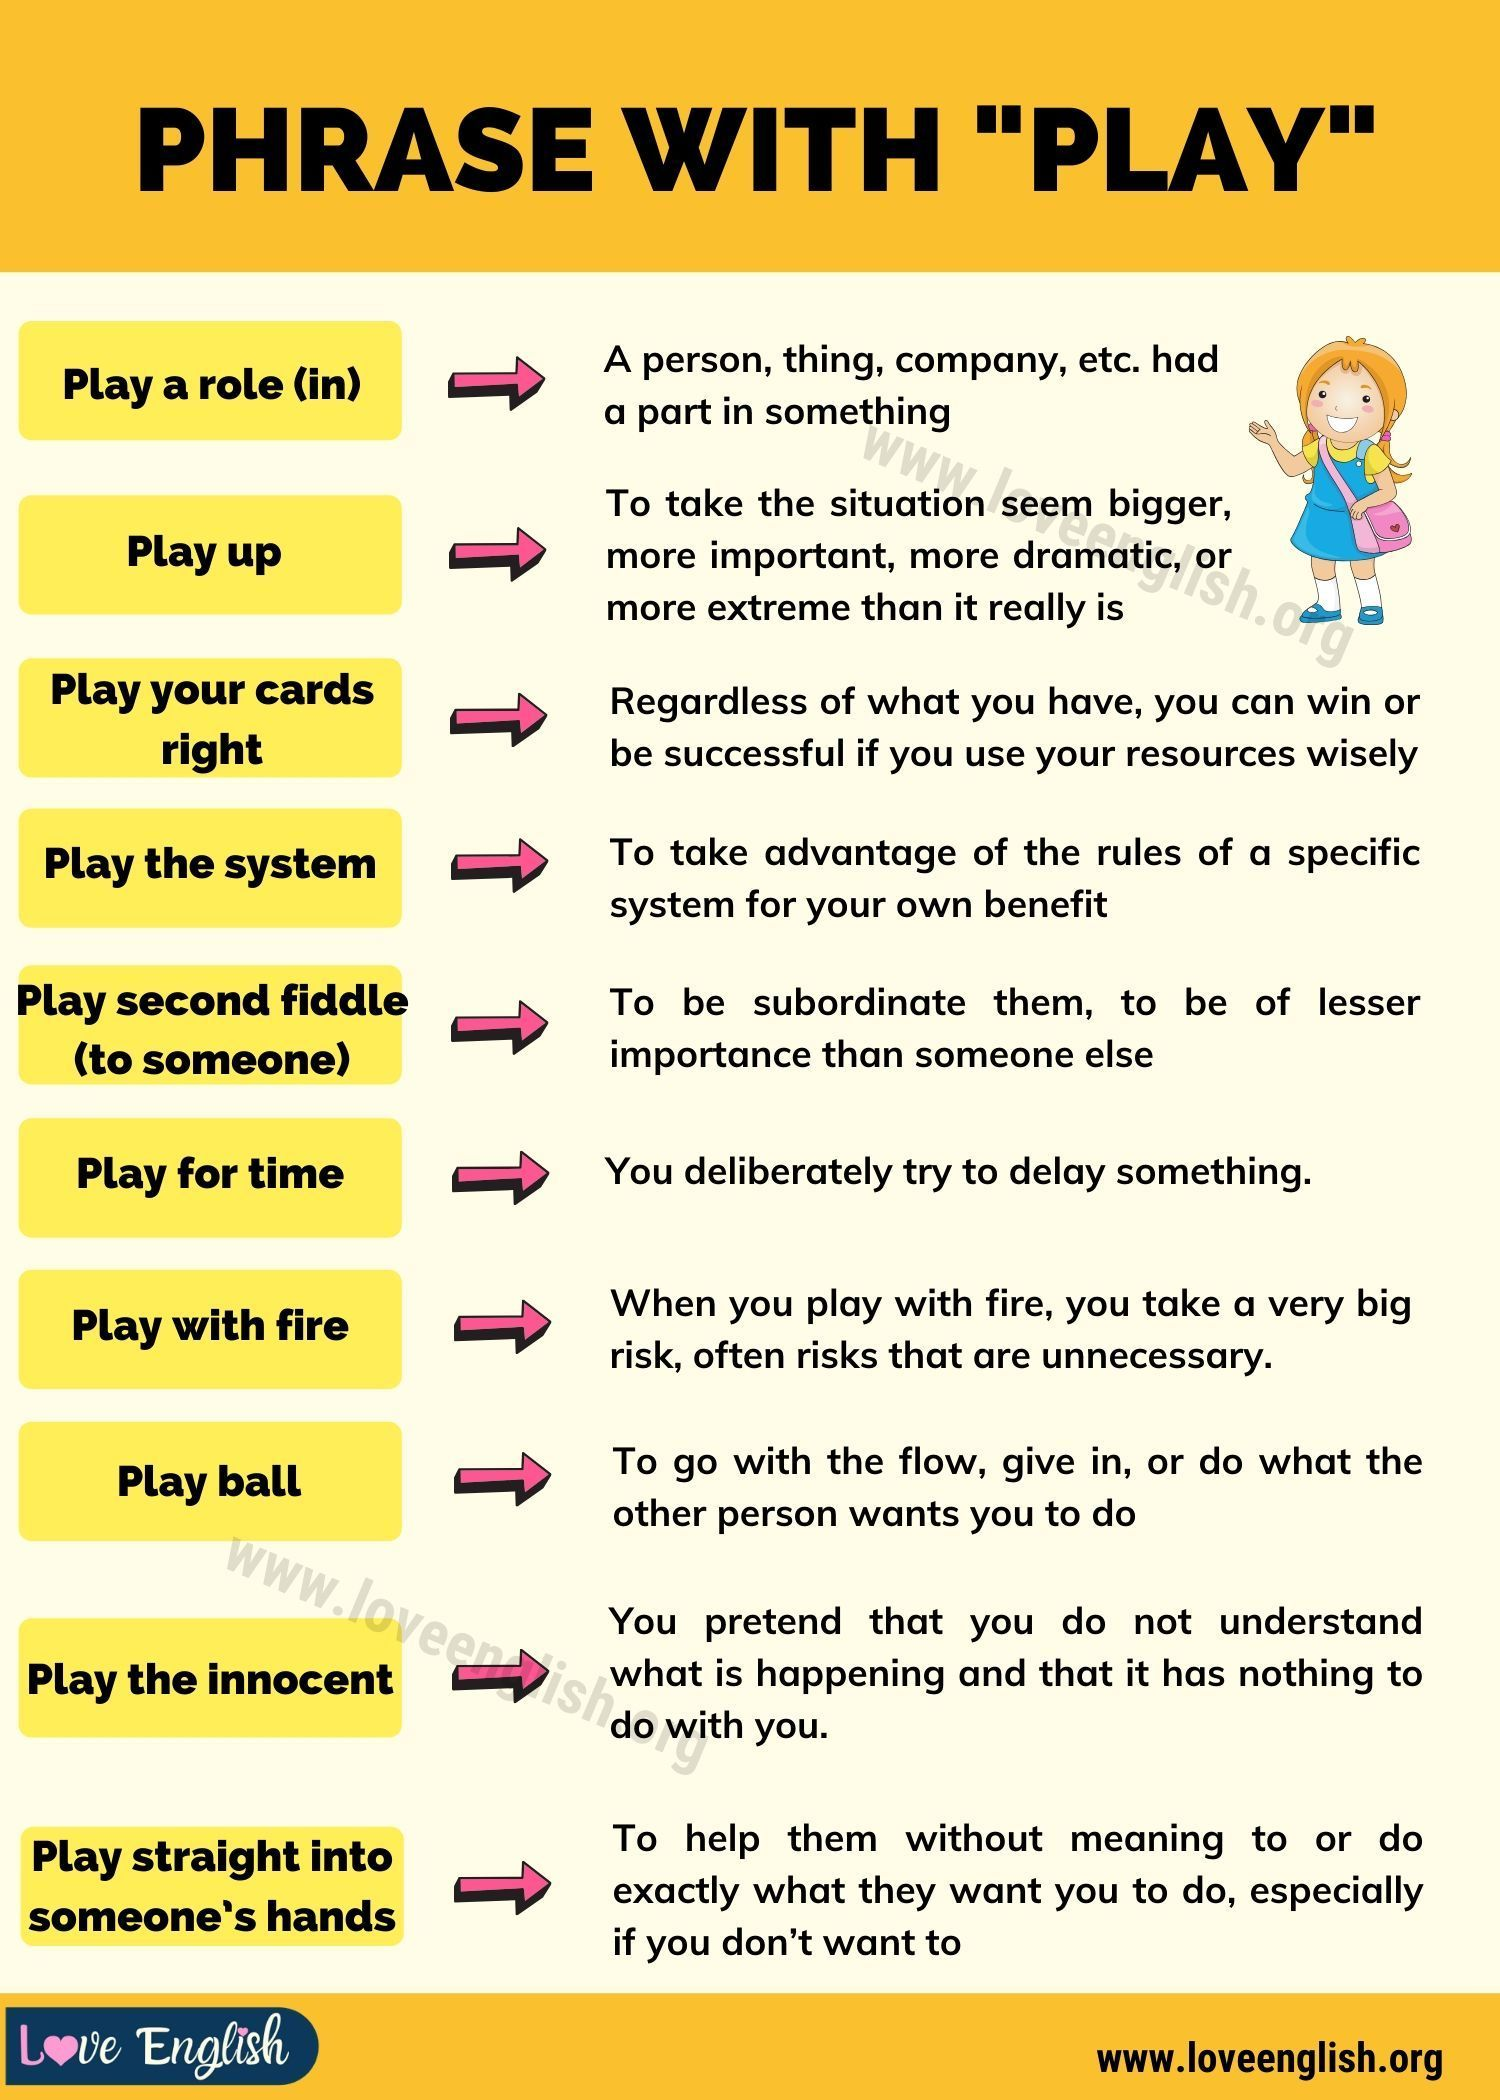 Play It by Ear How to Use This English Idiomatic Phrase